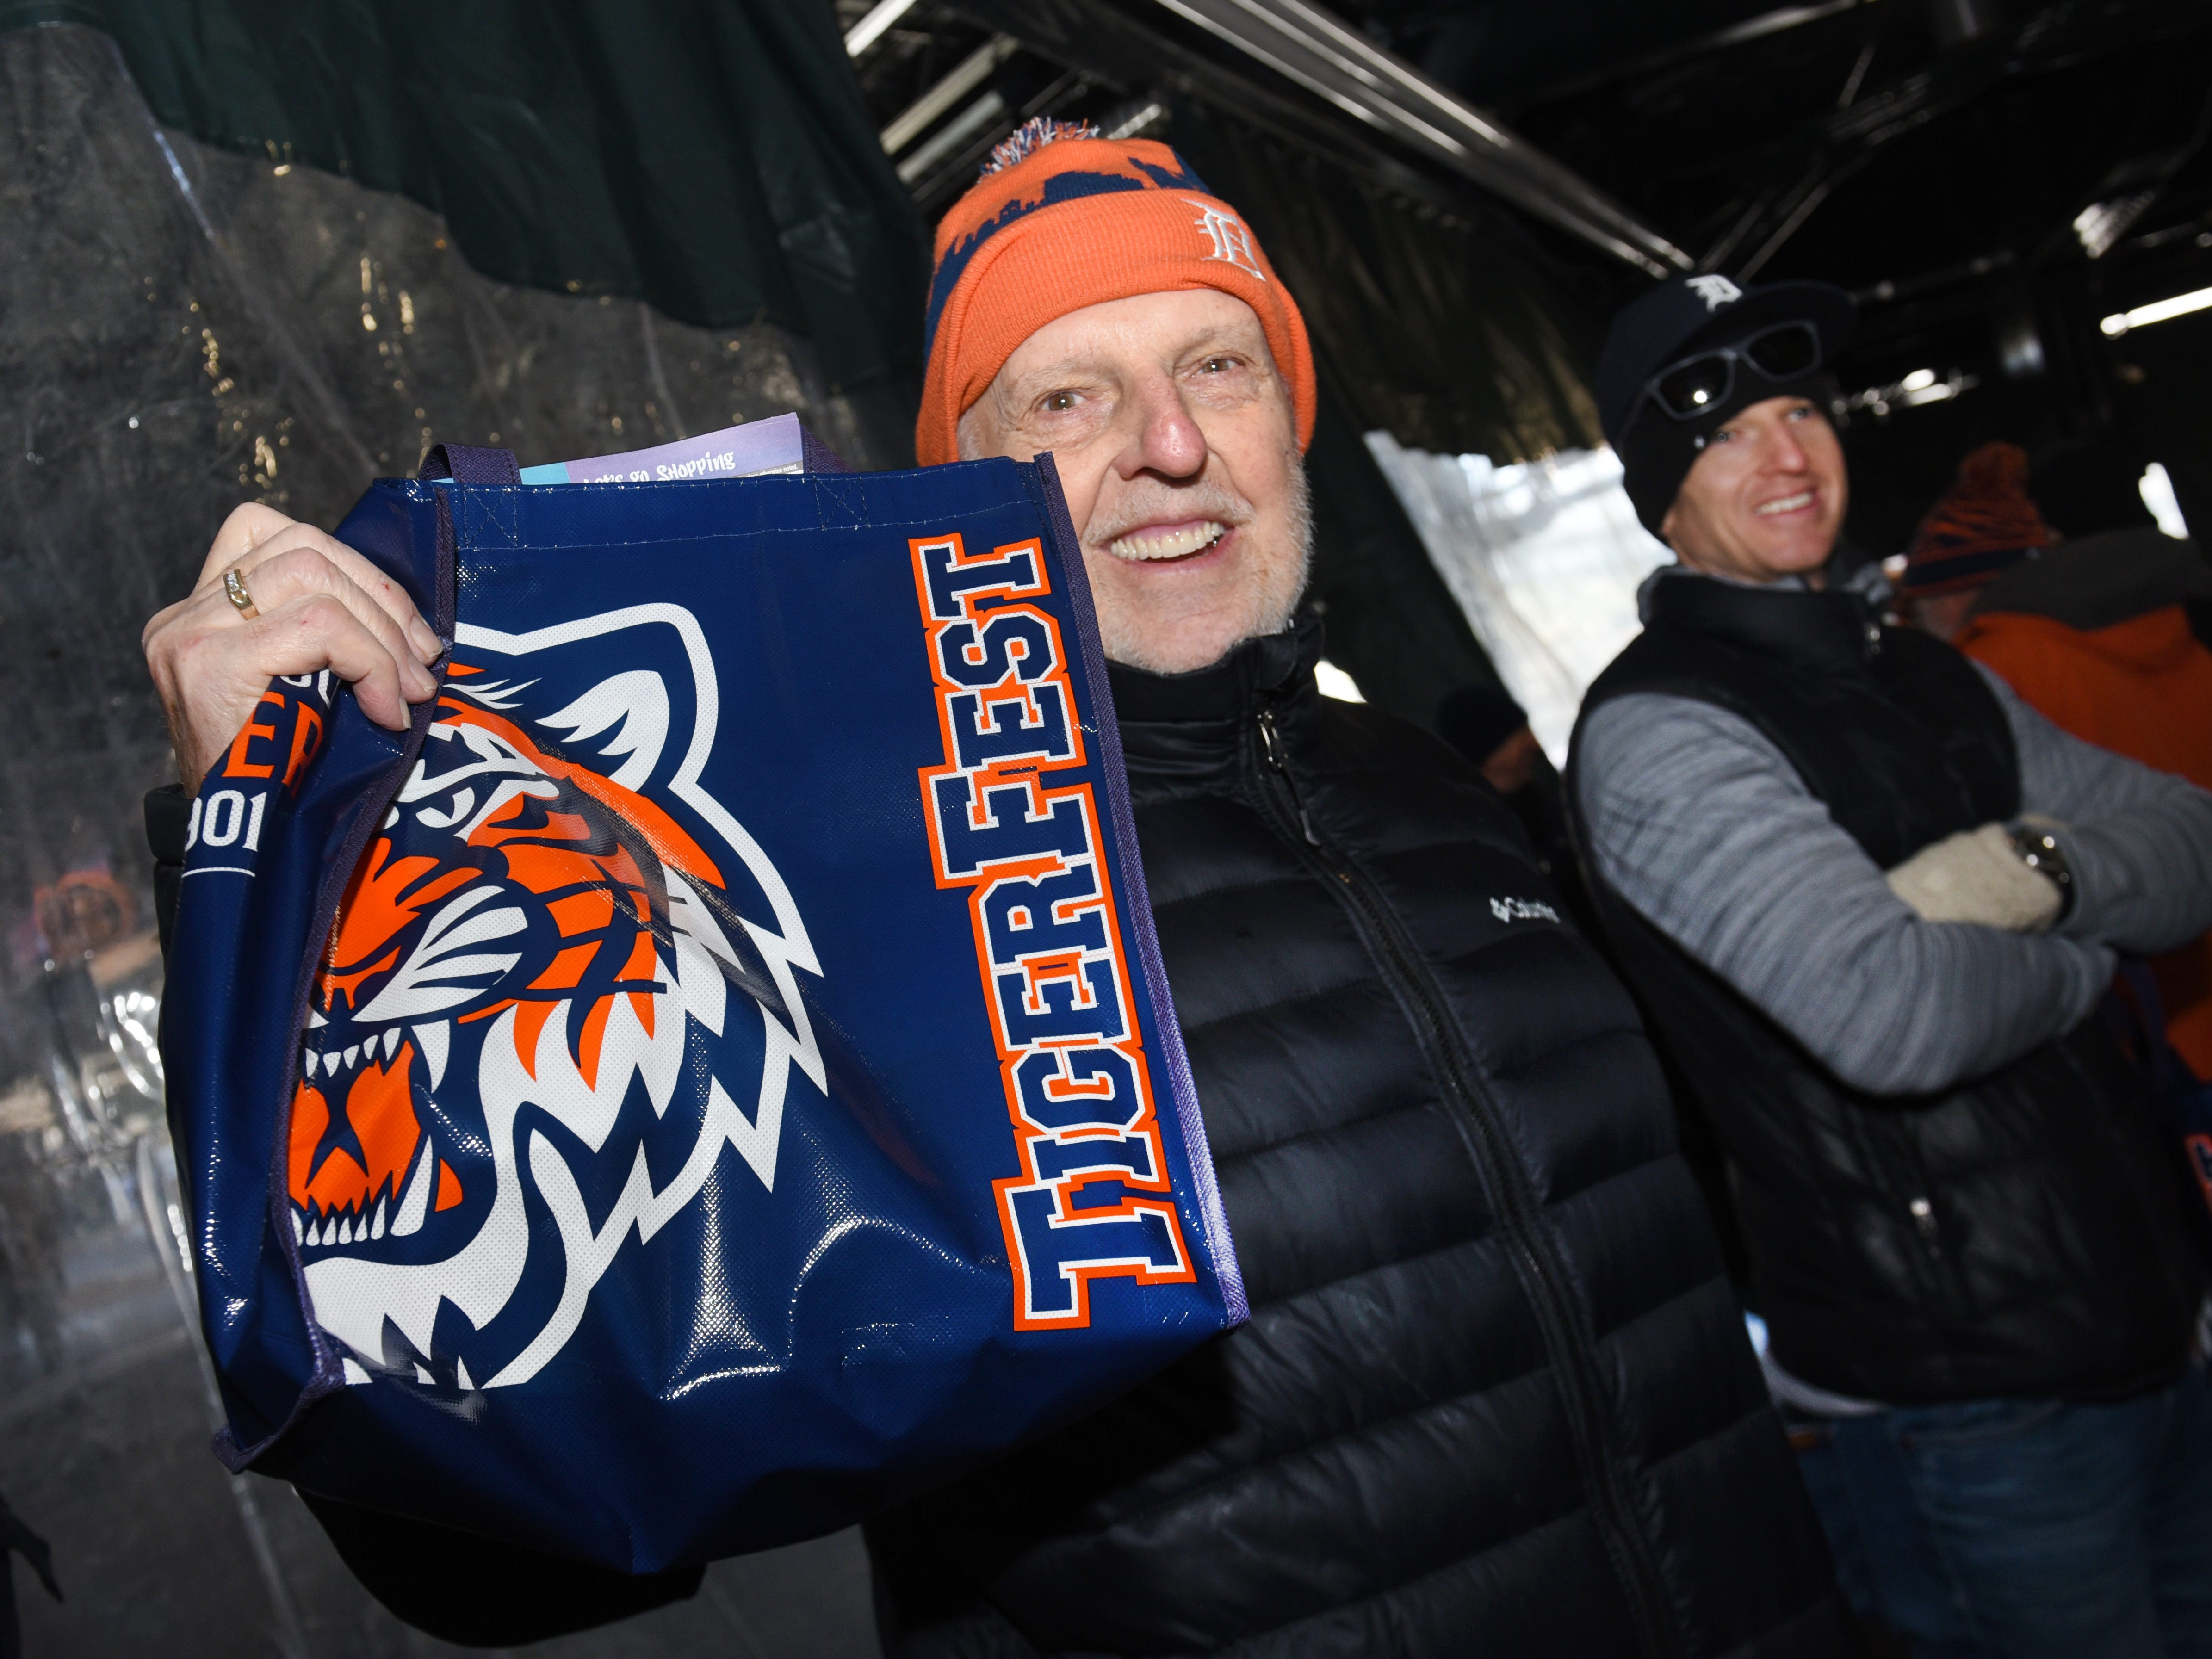 Don Watchowski of Shelby Township shows his Detroit Tiger pride during TigerFest 2019 at Comerica Park in Detroit on Saturday, January 26, 2019.